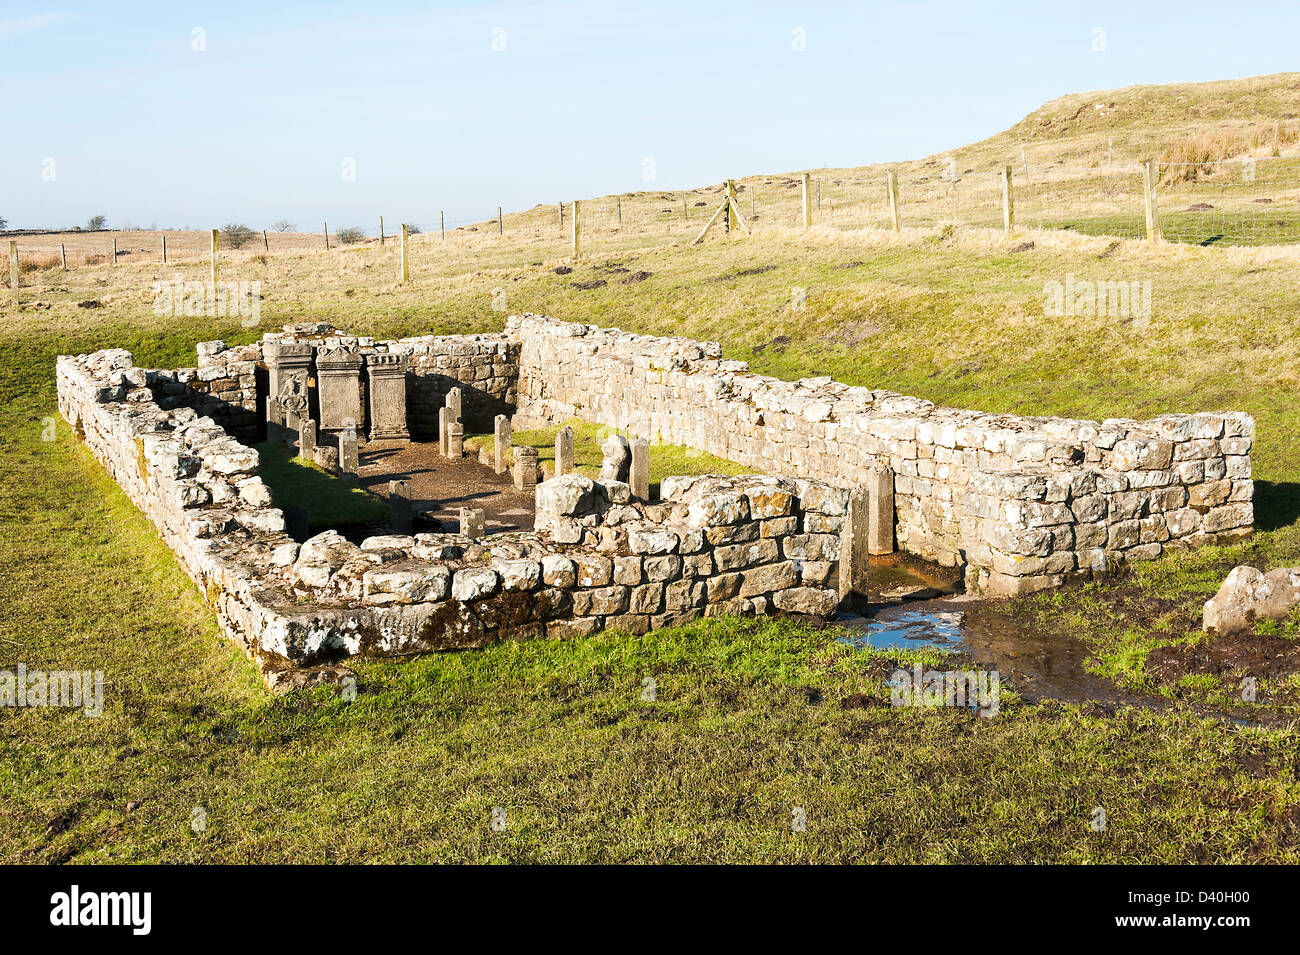 The Roman Temple of Mithras with Replica Stone Altars at Brocolitia Hadrians Wall near Chollerford Northumberland - Stock Image